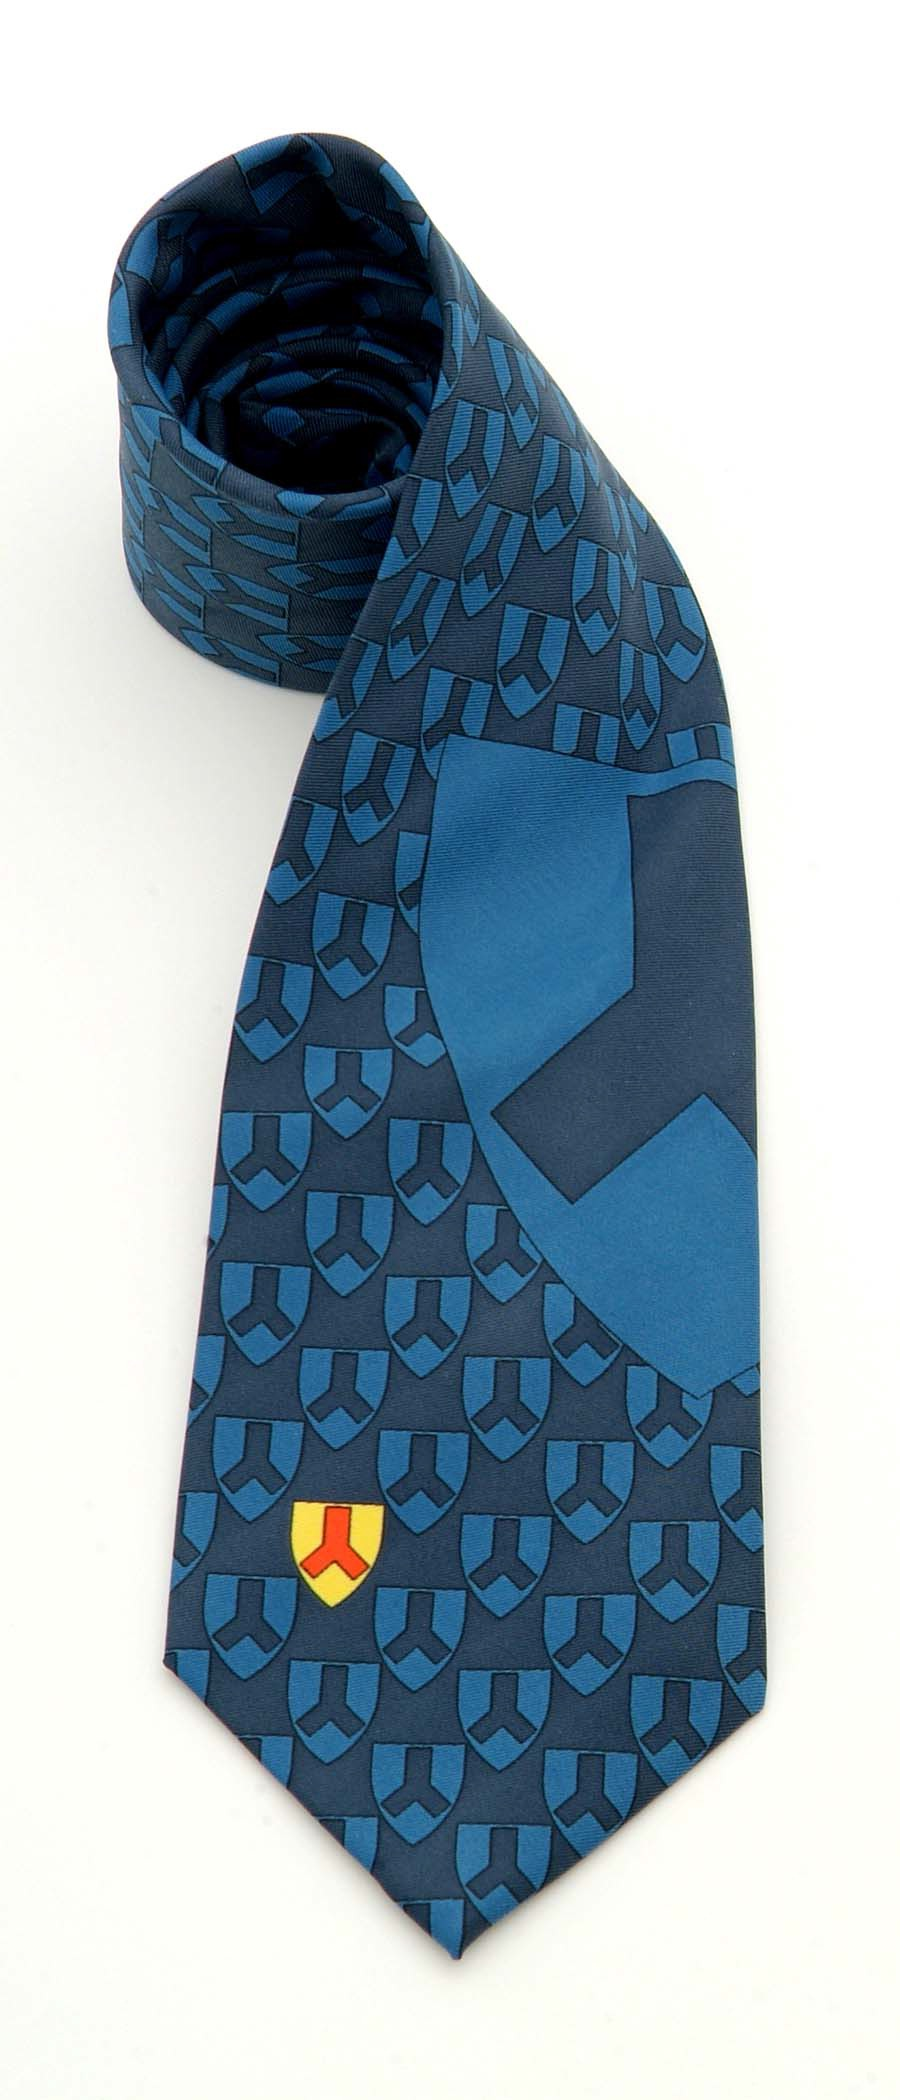 Bespoke Printed Polyester Tie